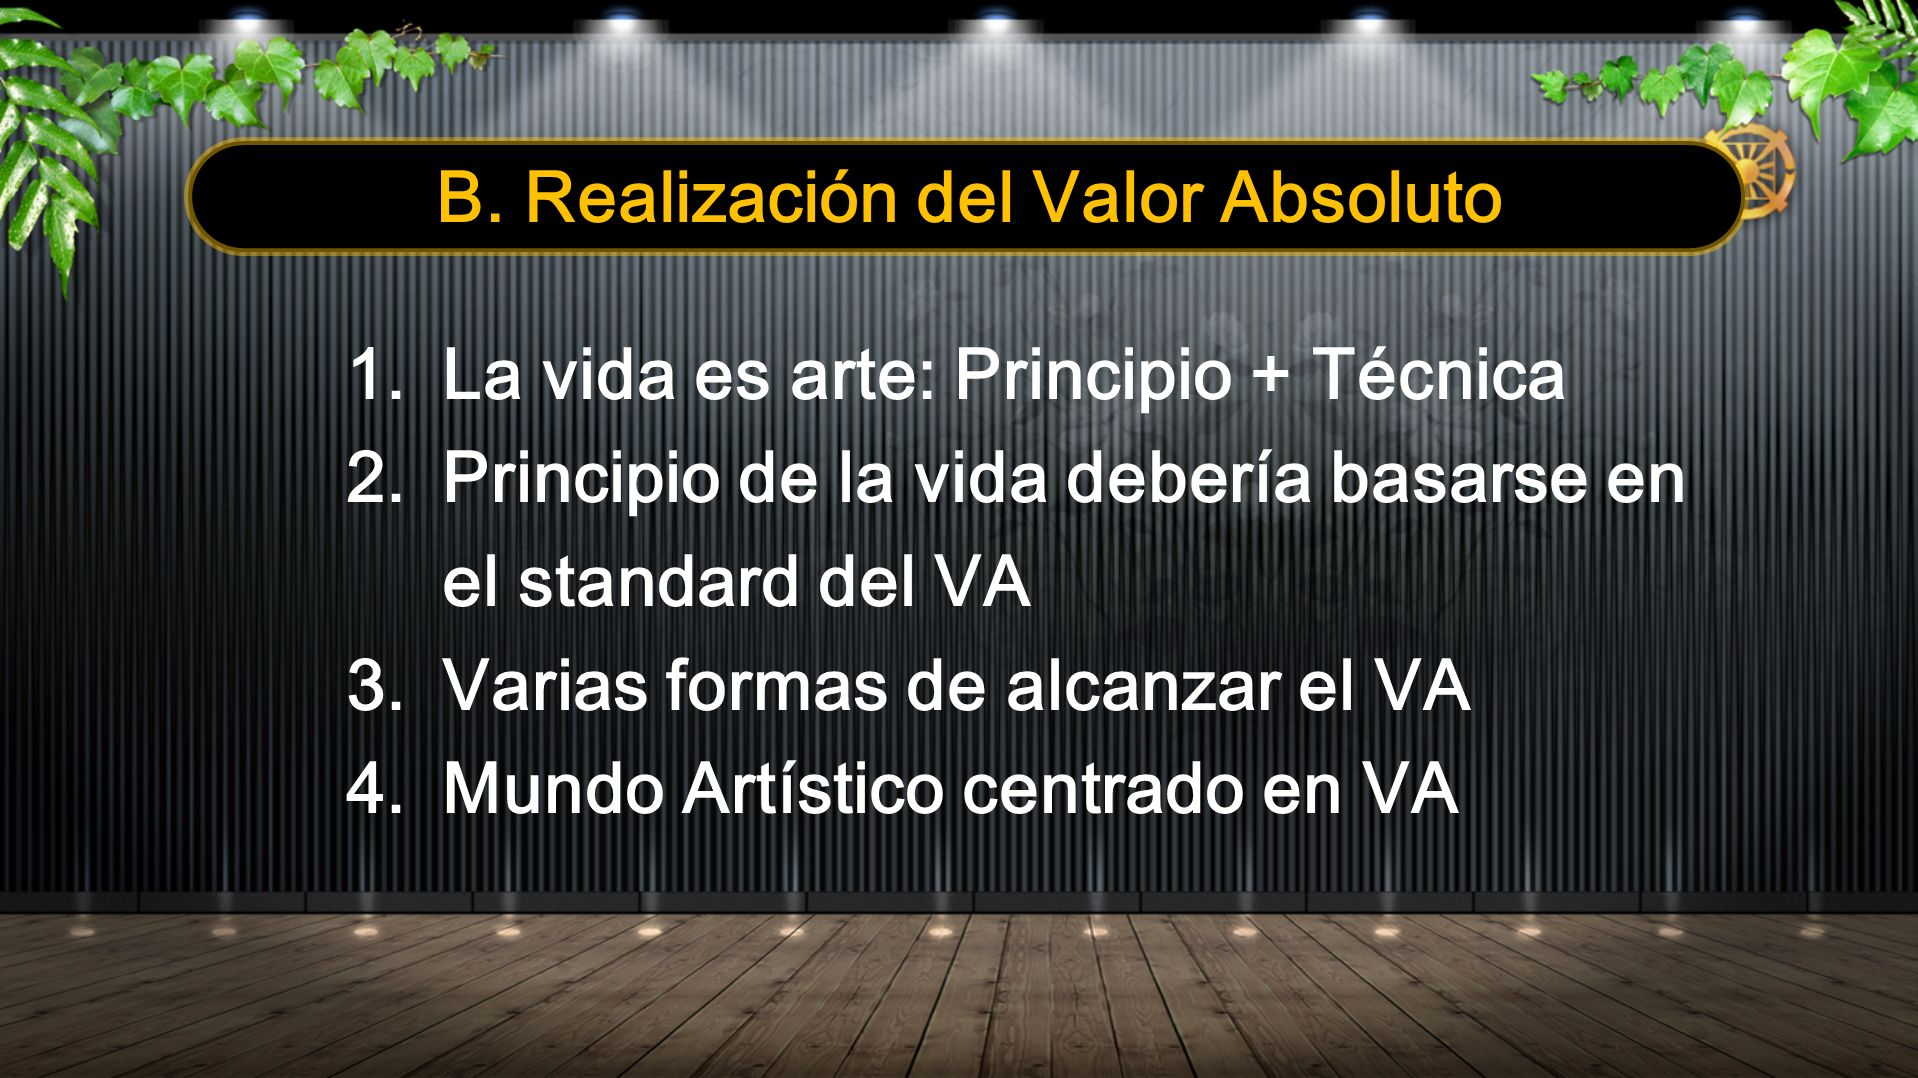 B. Realización del Valor Absoluto